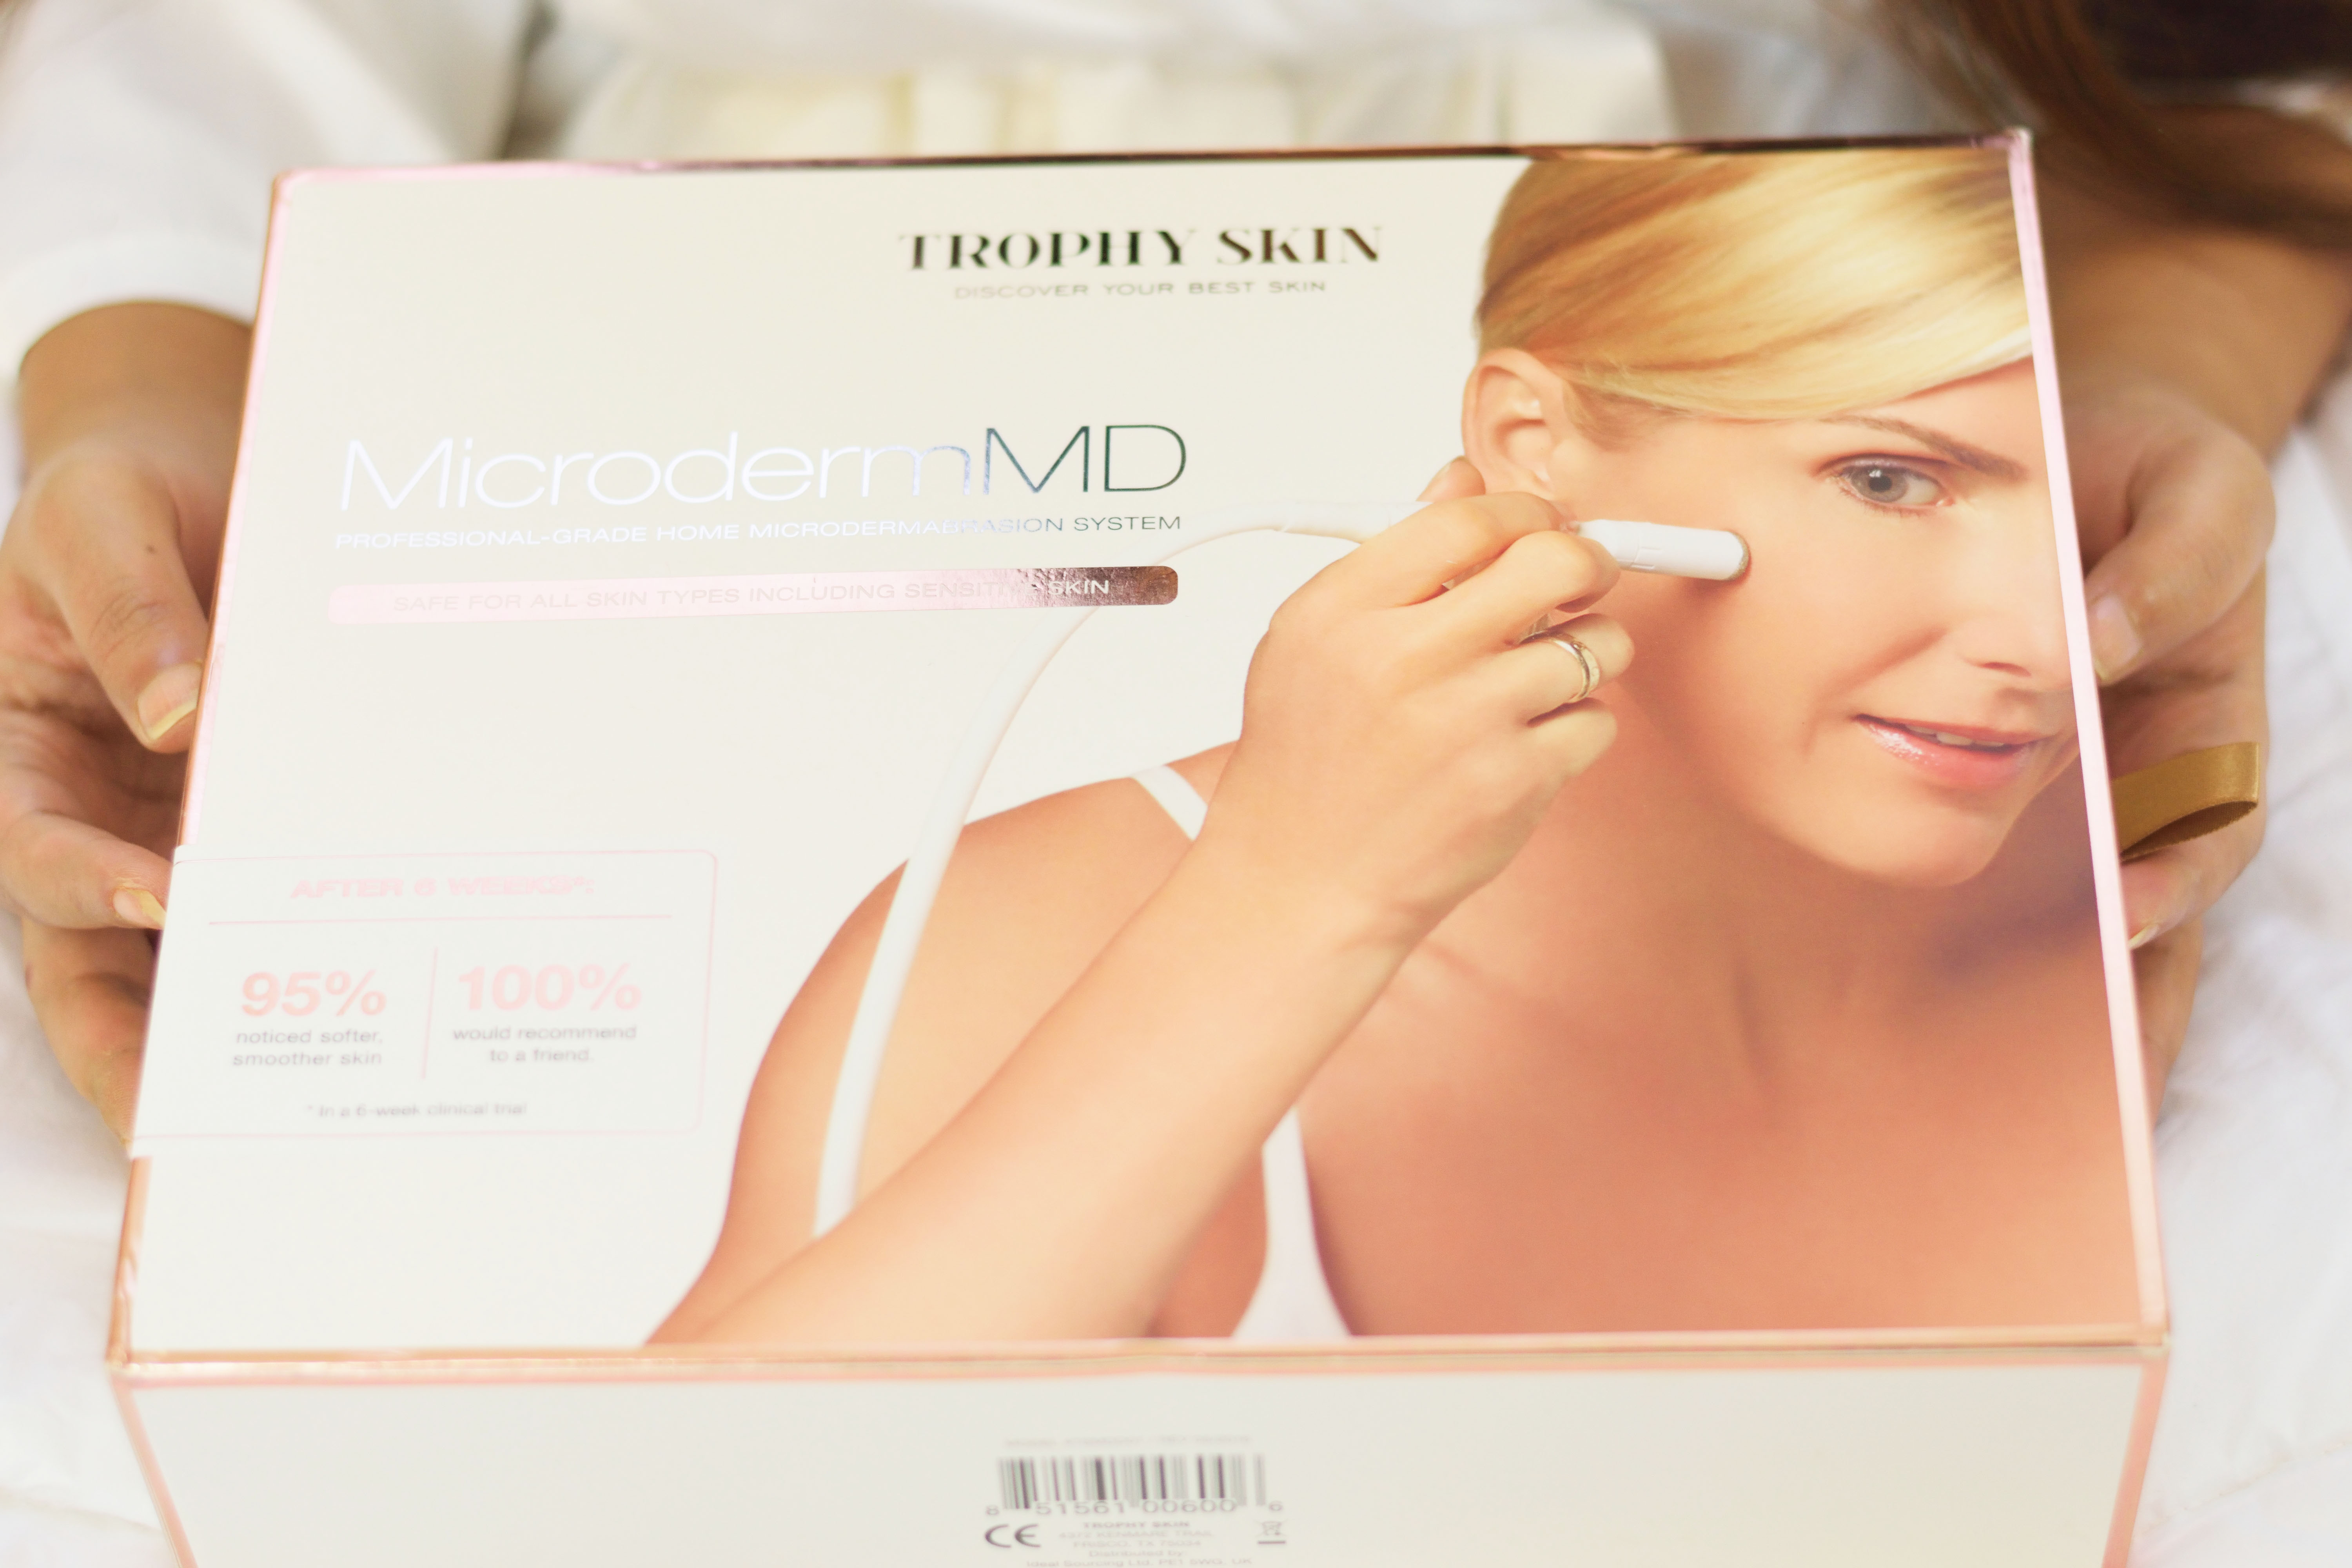 Trophy Skin Microdermabrasion at home review and giveaway